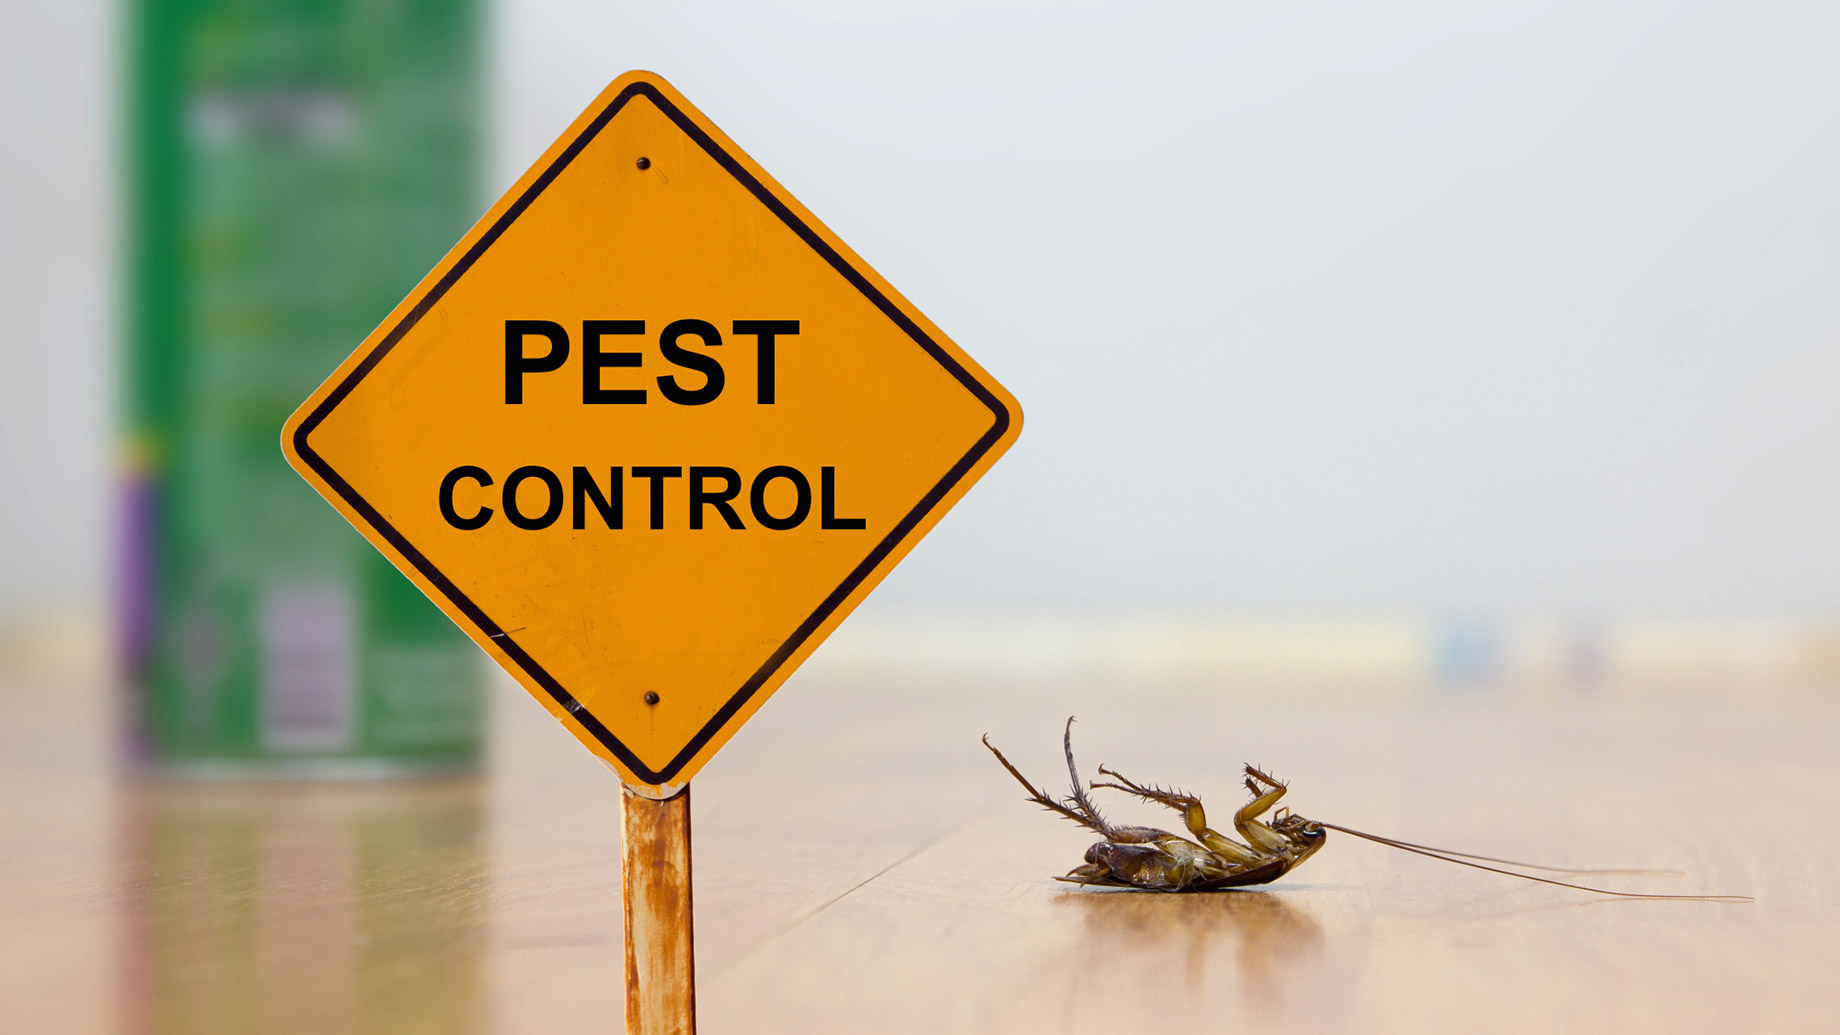 5 Creative and Natural Pest Control Methods You've Never Thought Of